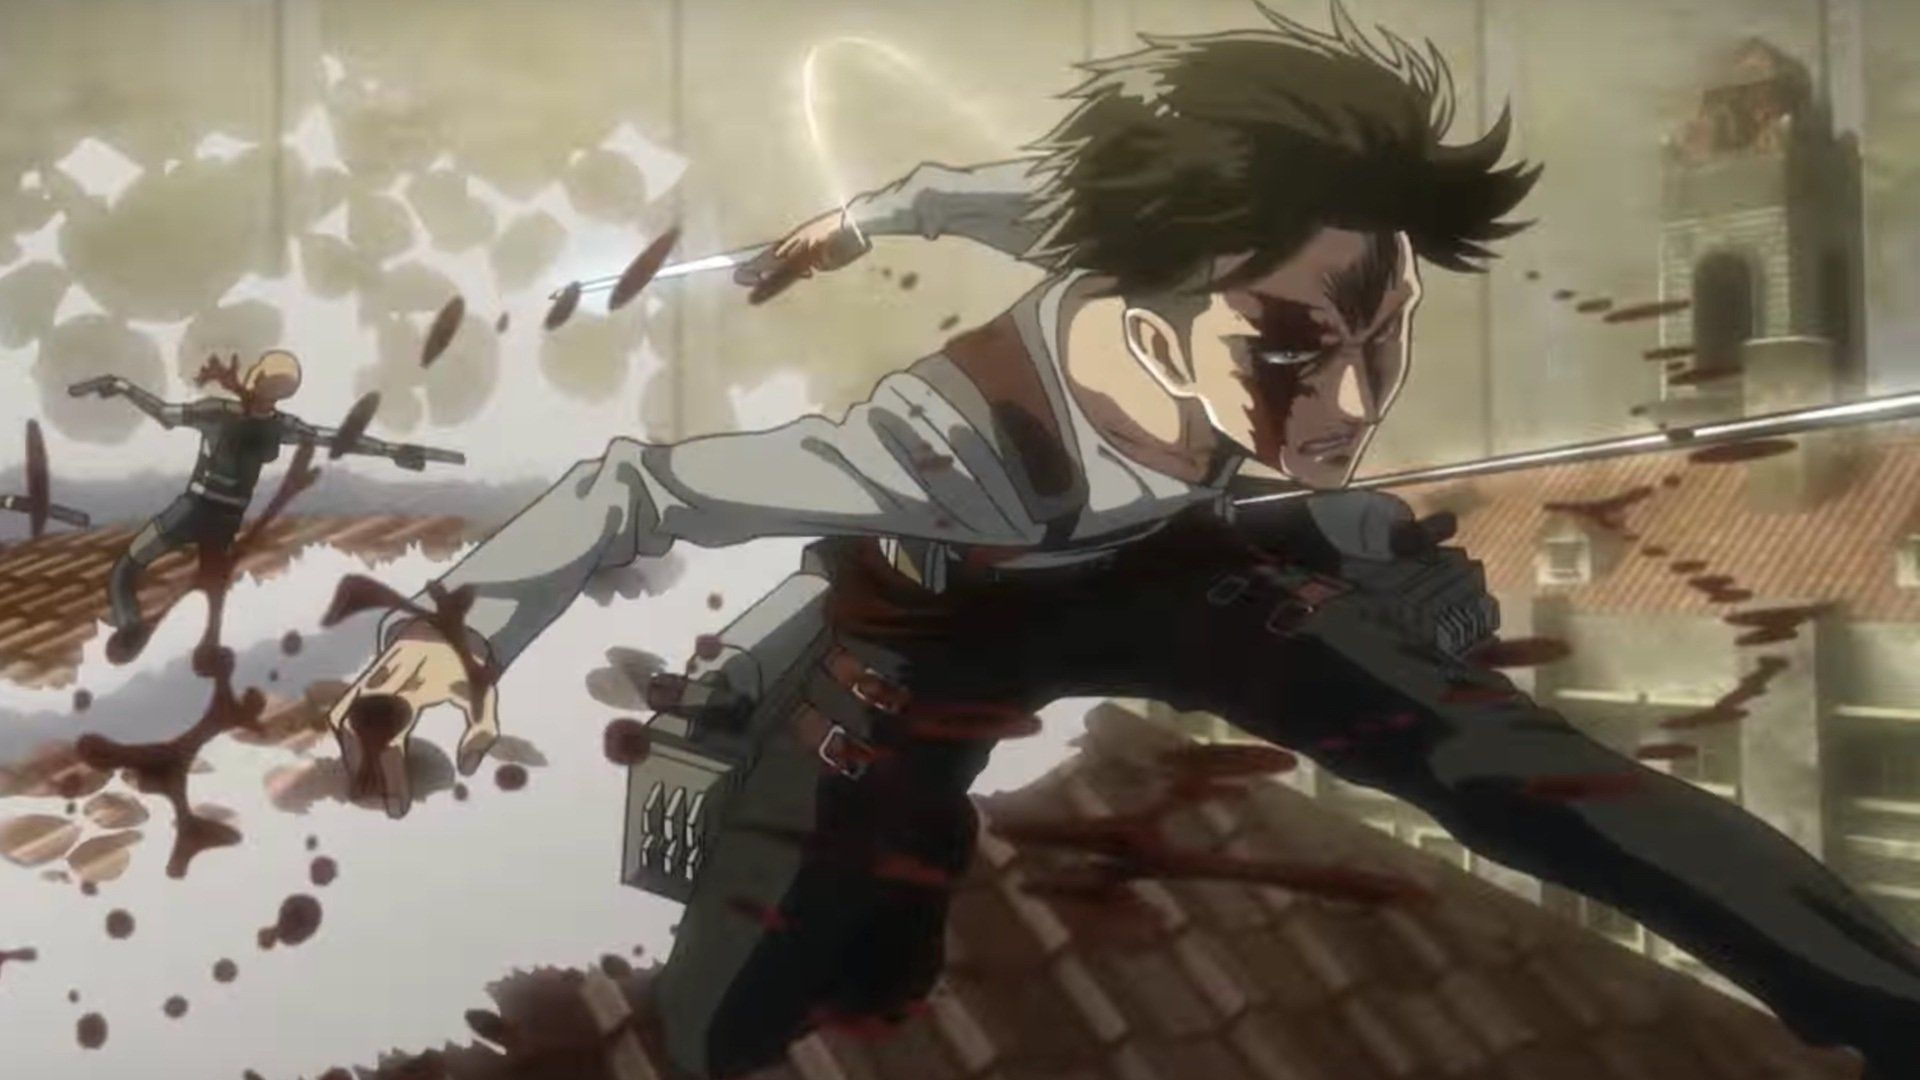 attack on titan aesthetic wallpapers